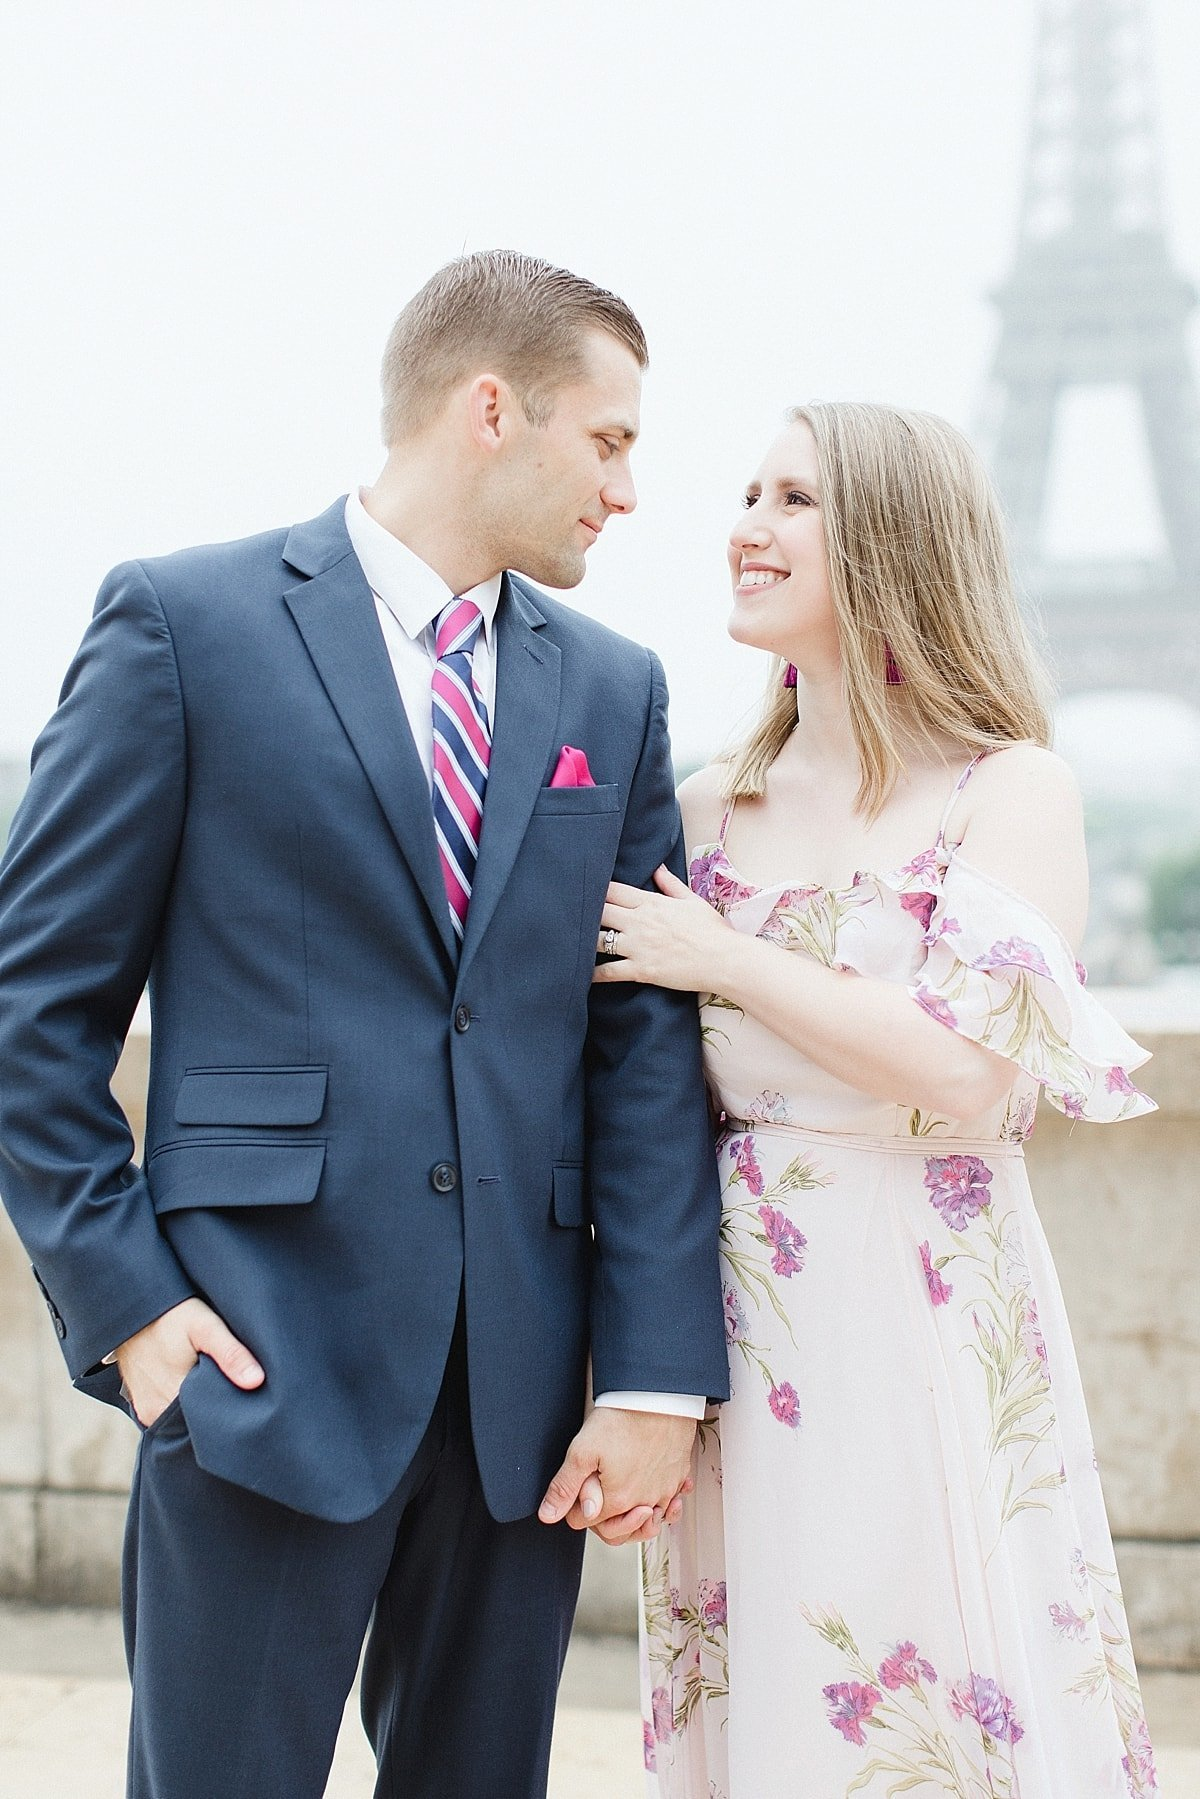 paris-photo-session-anniversary-alicia-yarrish-photography_19